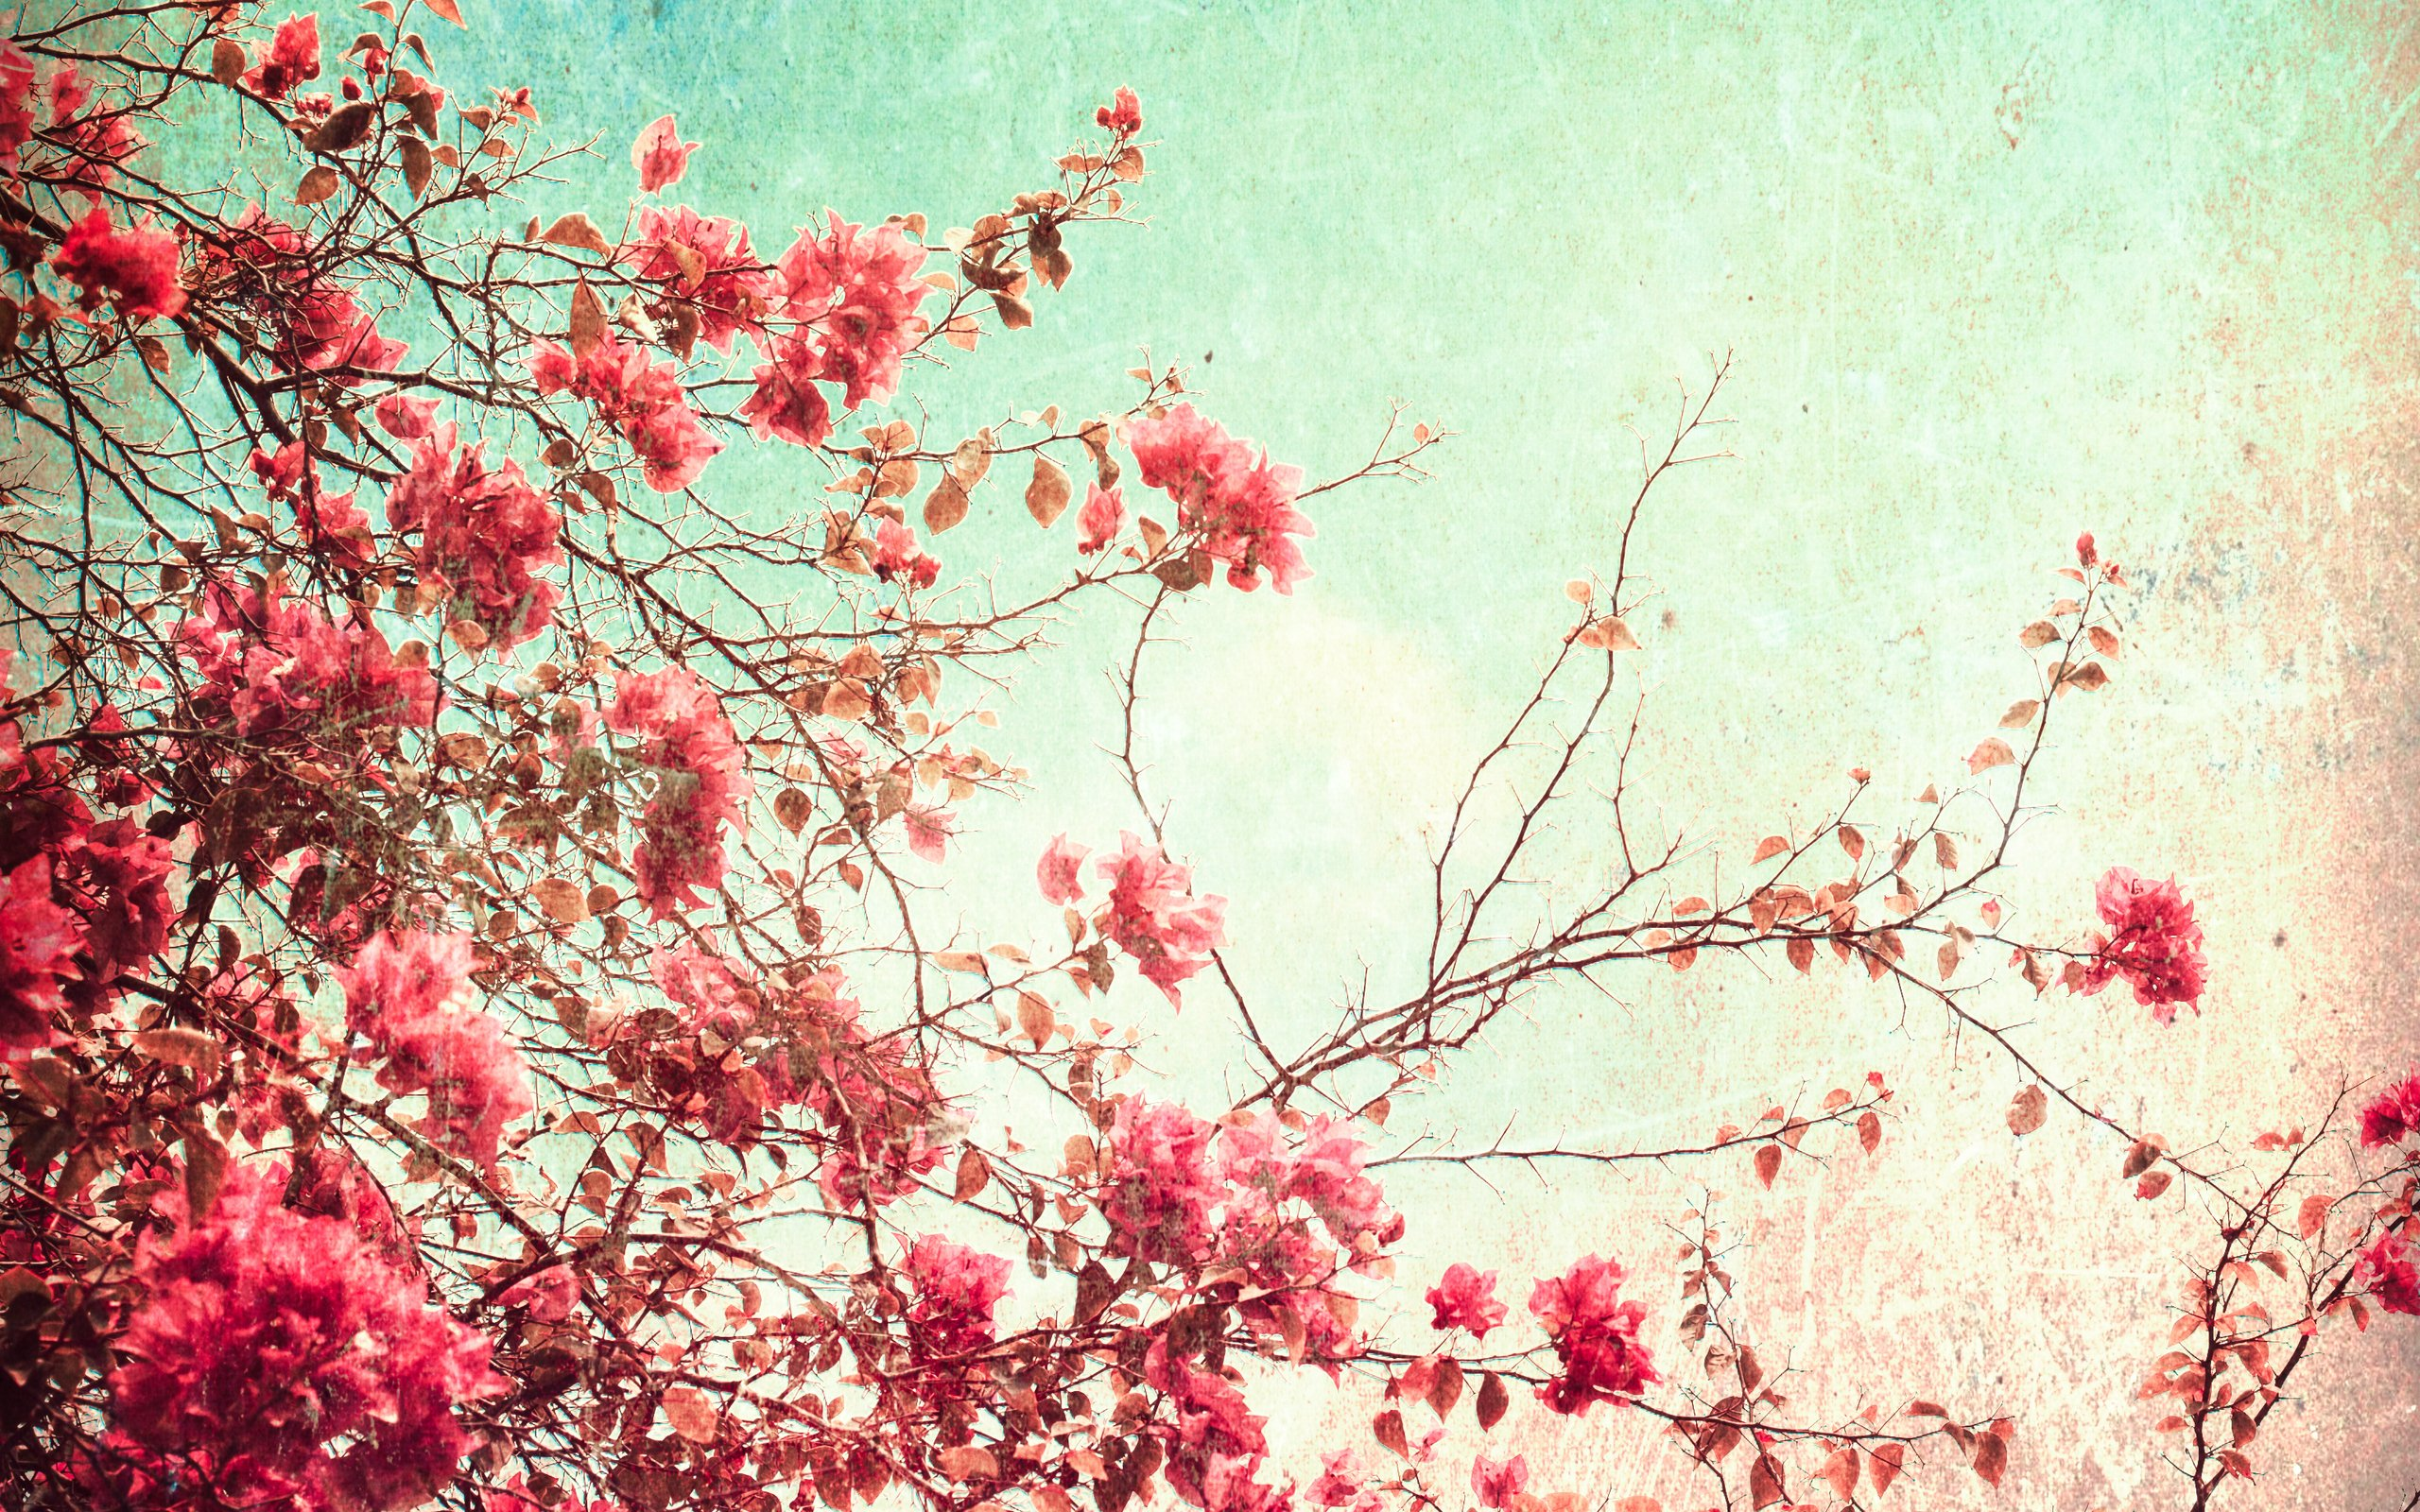 Flowers pink wallpaper 2560x1600 6799 wallpaperup mightylinksfo Image collections